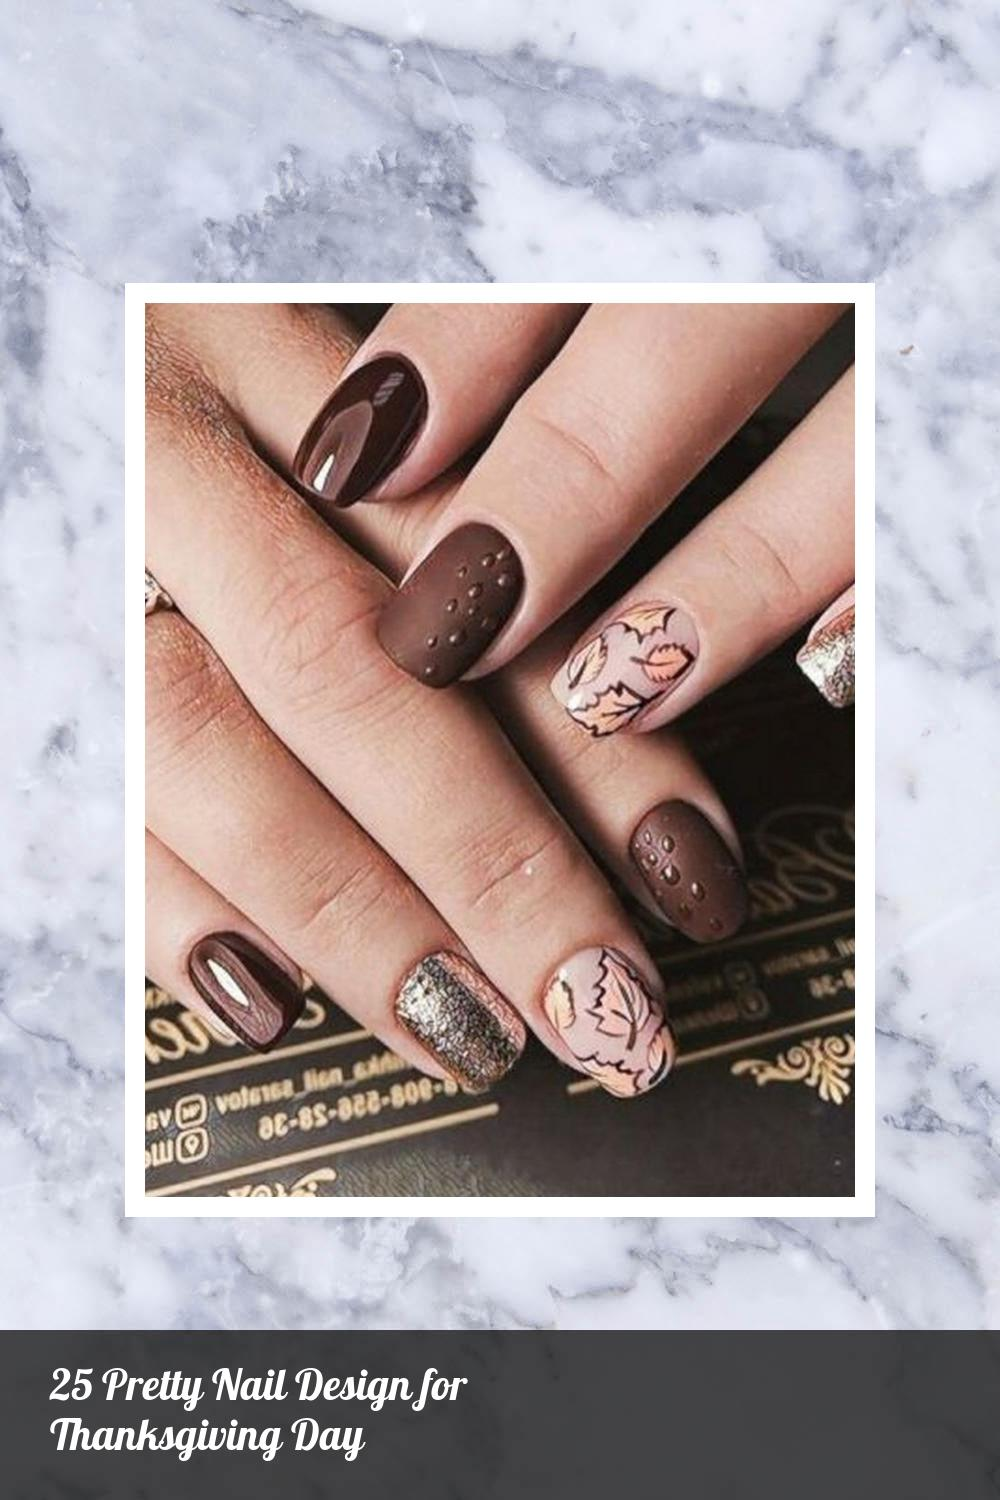 25 Pretty Nail Design for Thanksgiving Day 4